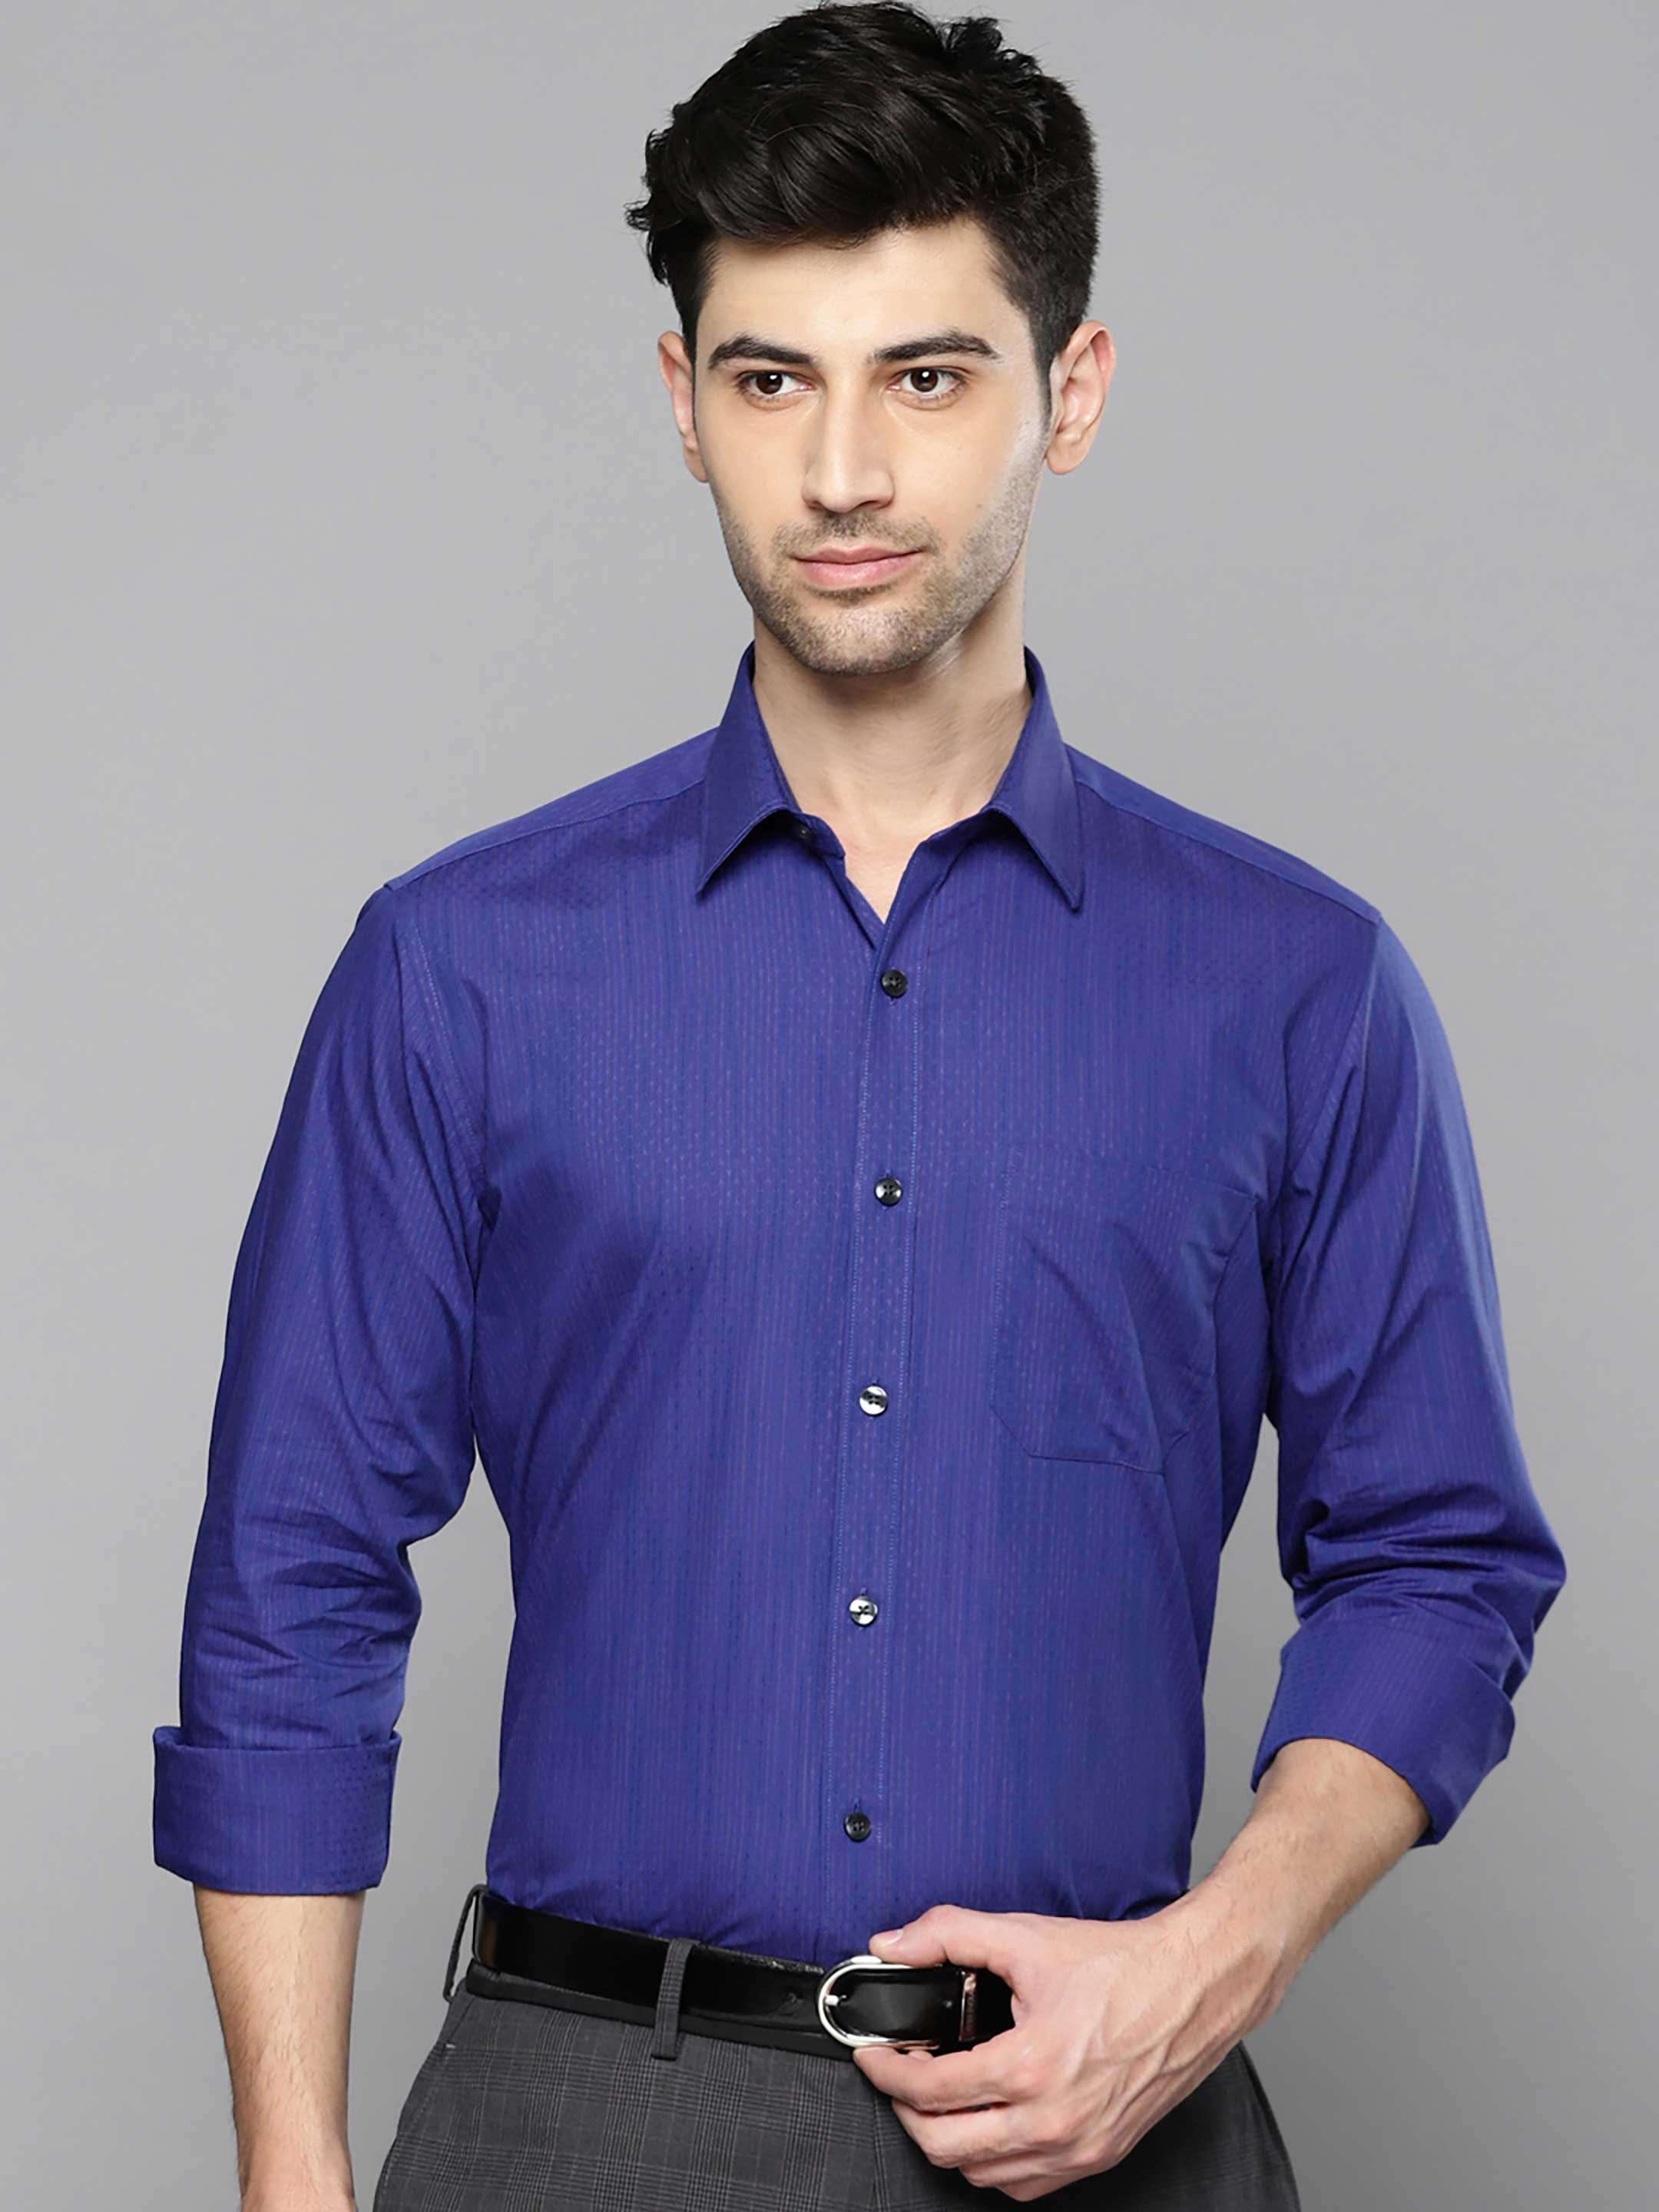 louis philippe royal blue shirt g3 mcs5107 g3fashion com